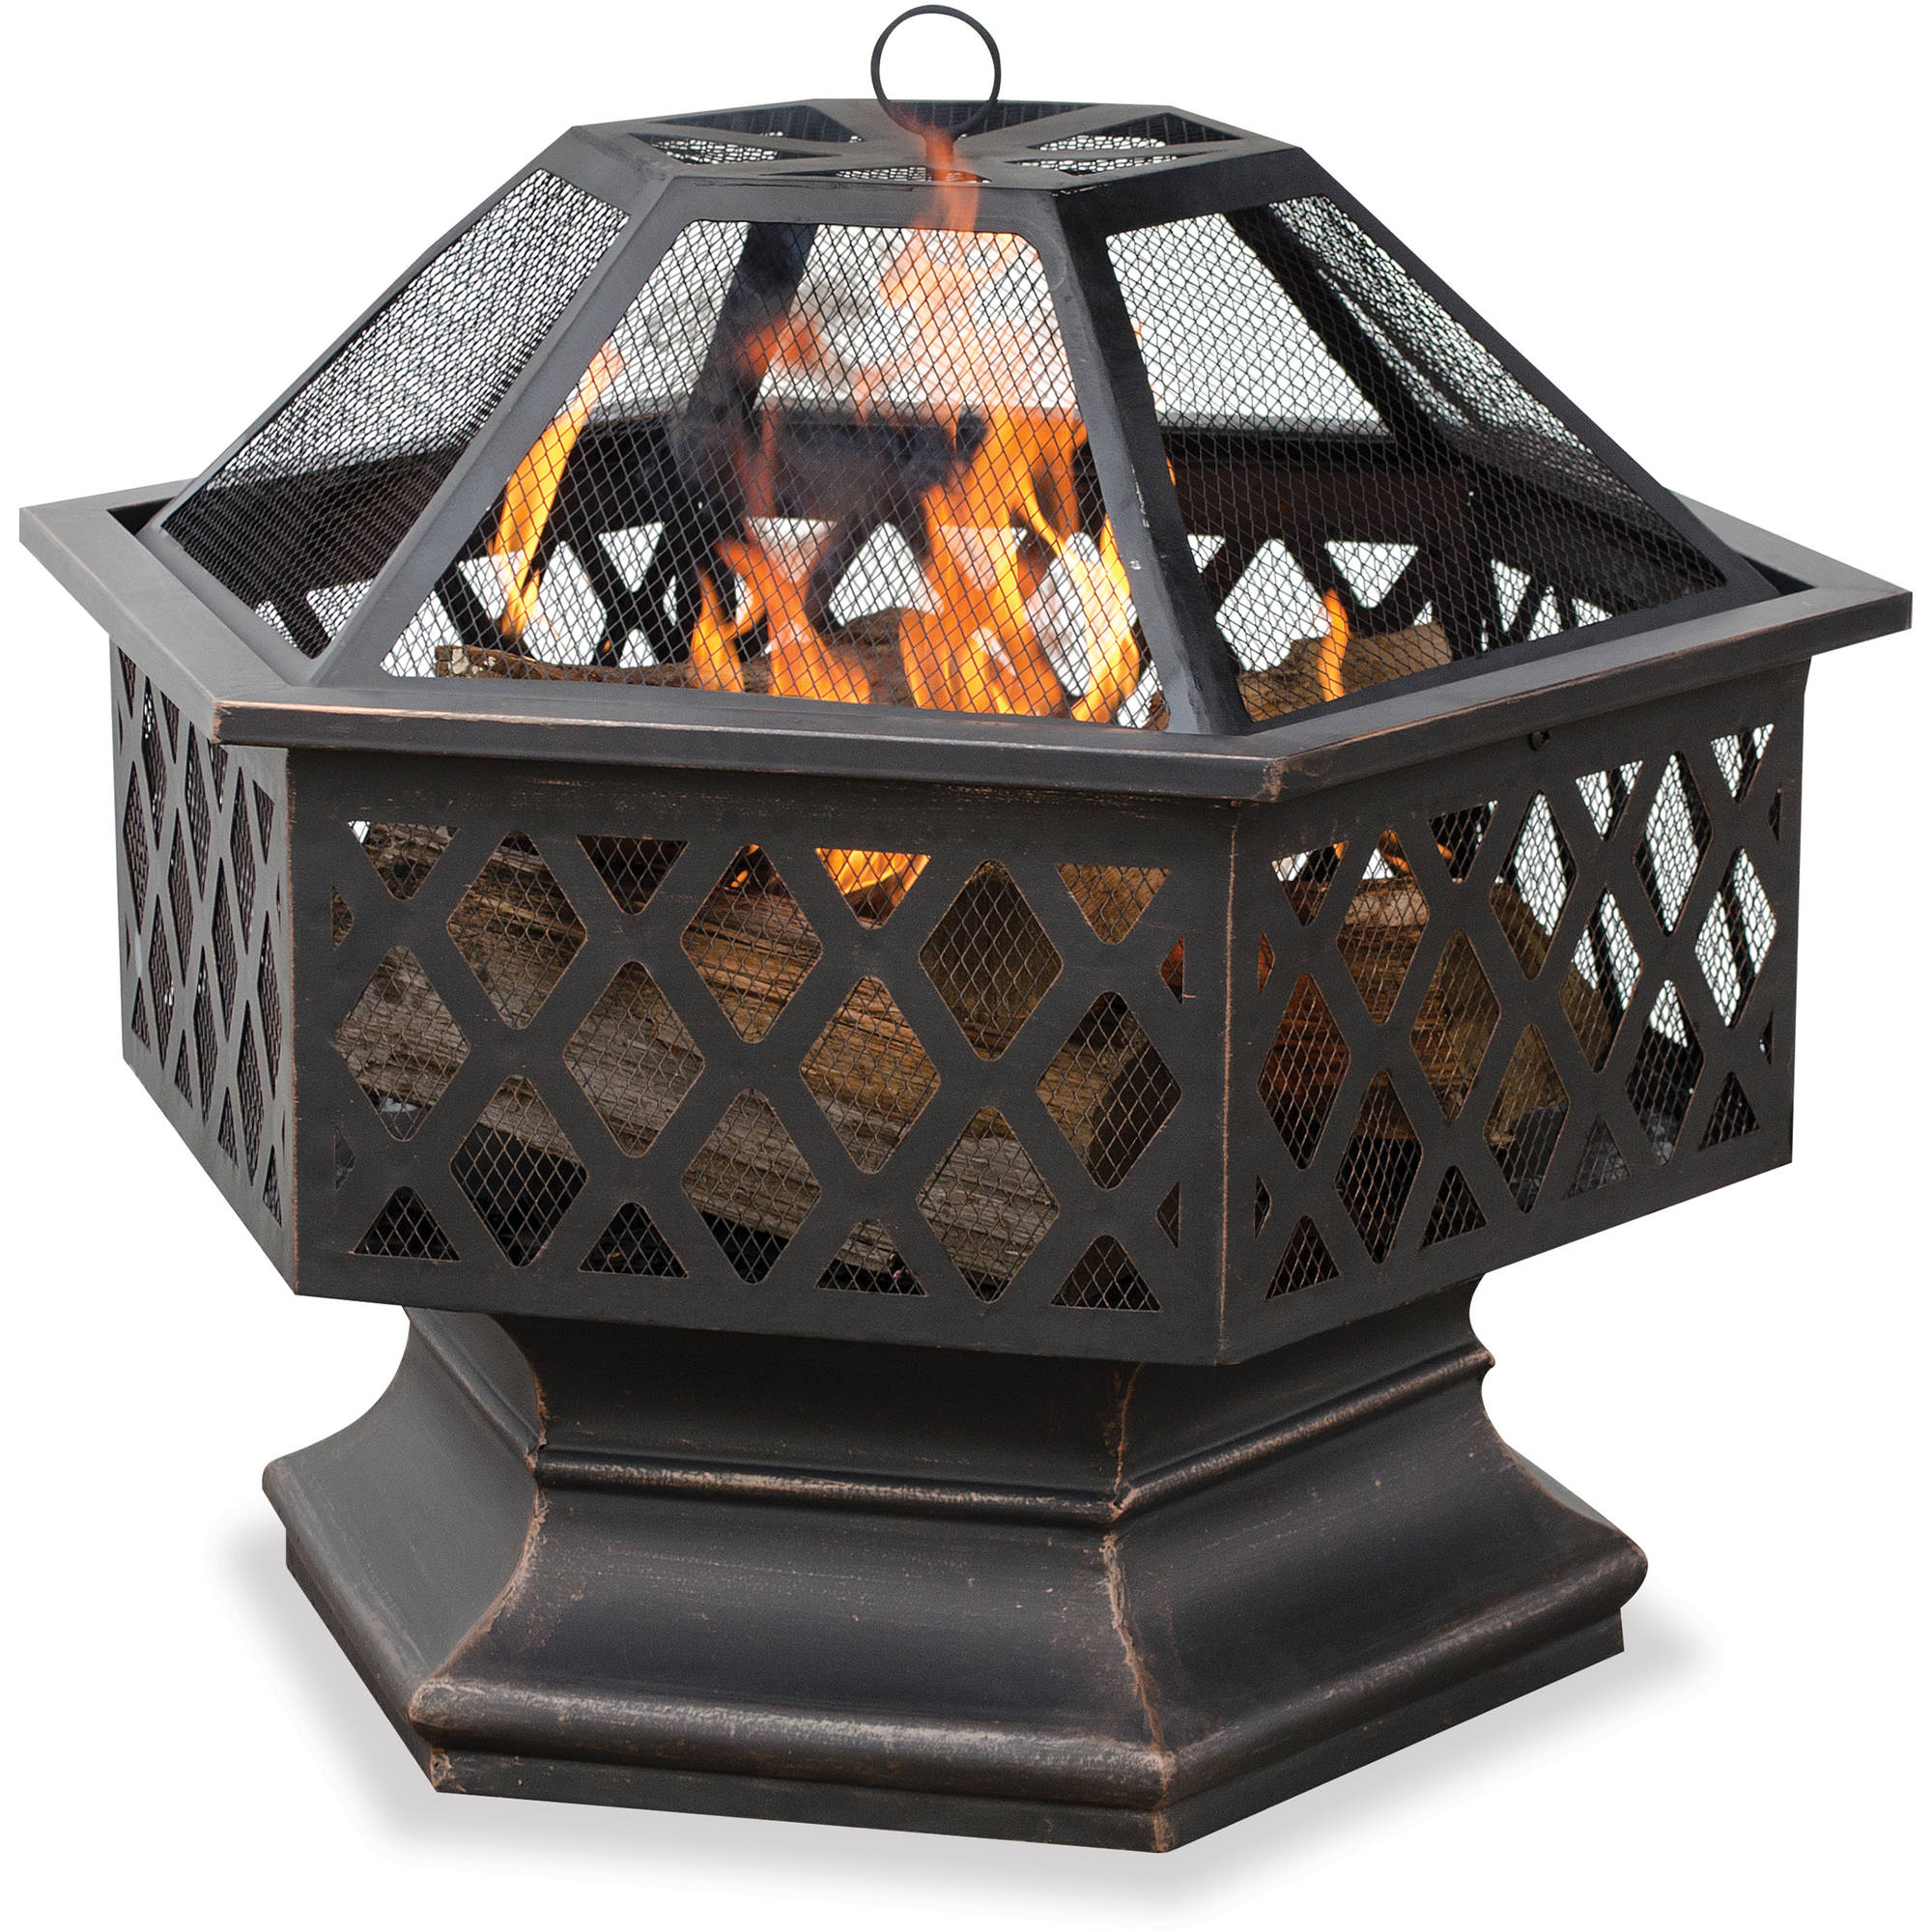 Deep Bronze 6-Sided Lattice Fire Pit Bowl